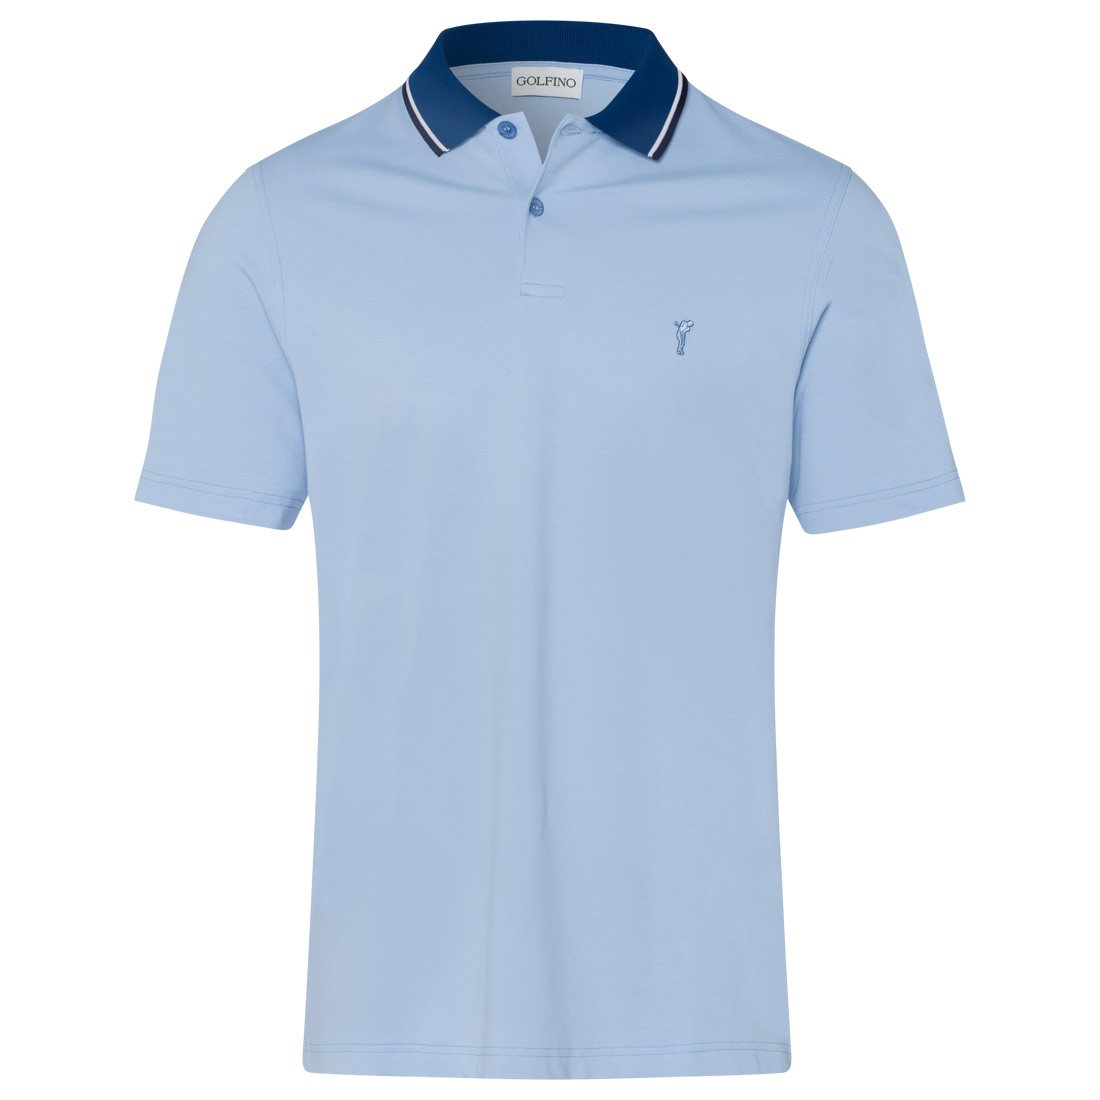 1cd403b74dd3c GOLFINO Modern men s short-sleeved polo shirt shop online